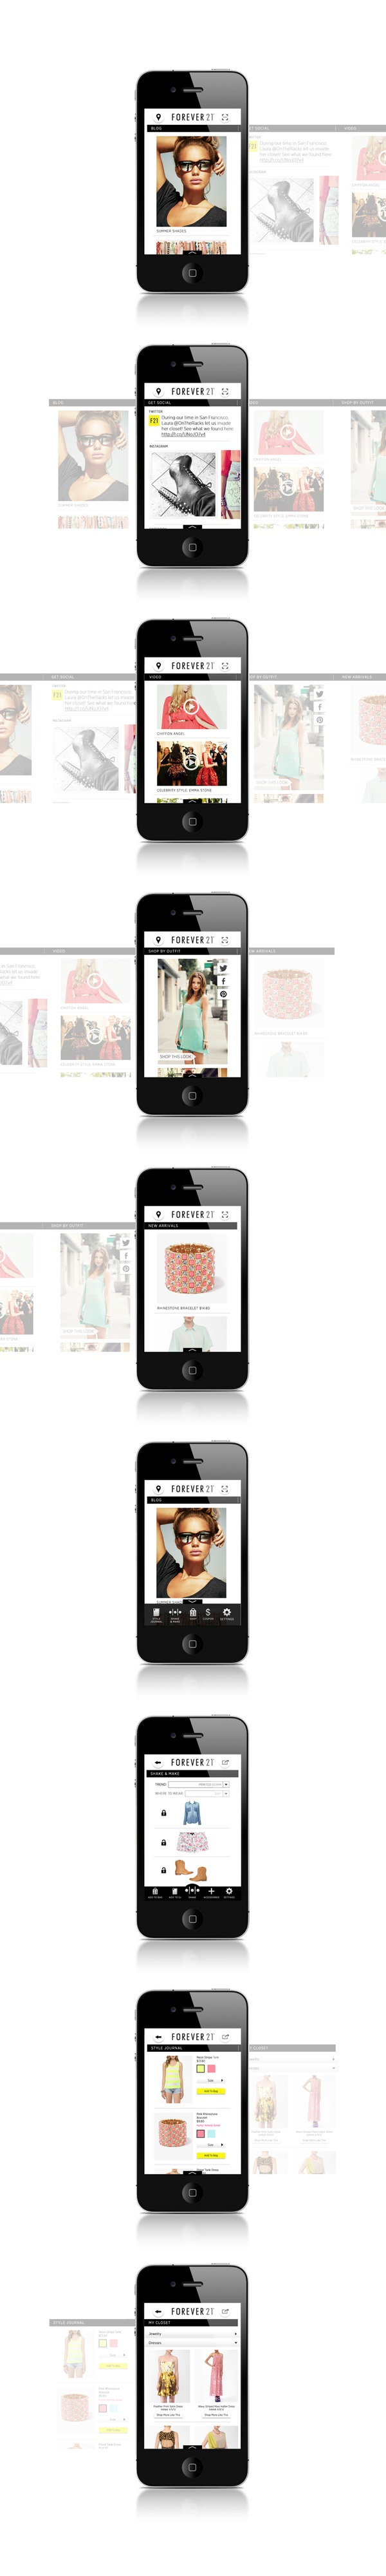 Forever 21 Mobile App by Hannah Barganier, via Behance *** With an already established fan base, Forever 21 needs an app that's just as robust and fun as it's stores. Taking advantage of the horizontal and vertical scrolling that more users are becoming comfortable with, the design provides seamless transition between different feeds from the brand as well as multiple mini apps within the app.  *This was the original design proposal and did not go into production.